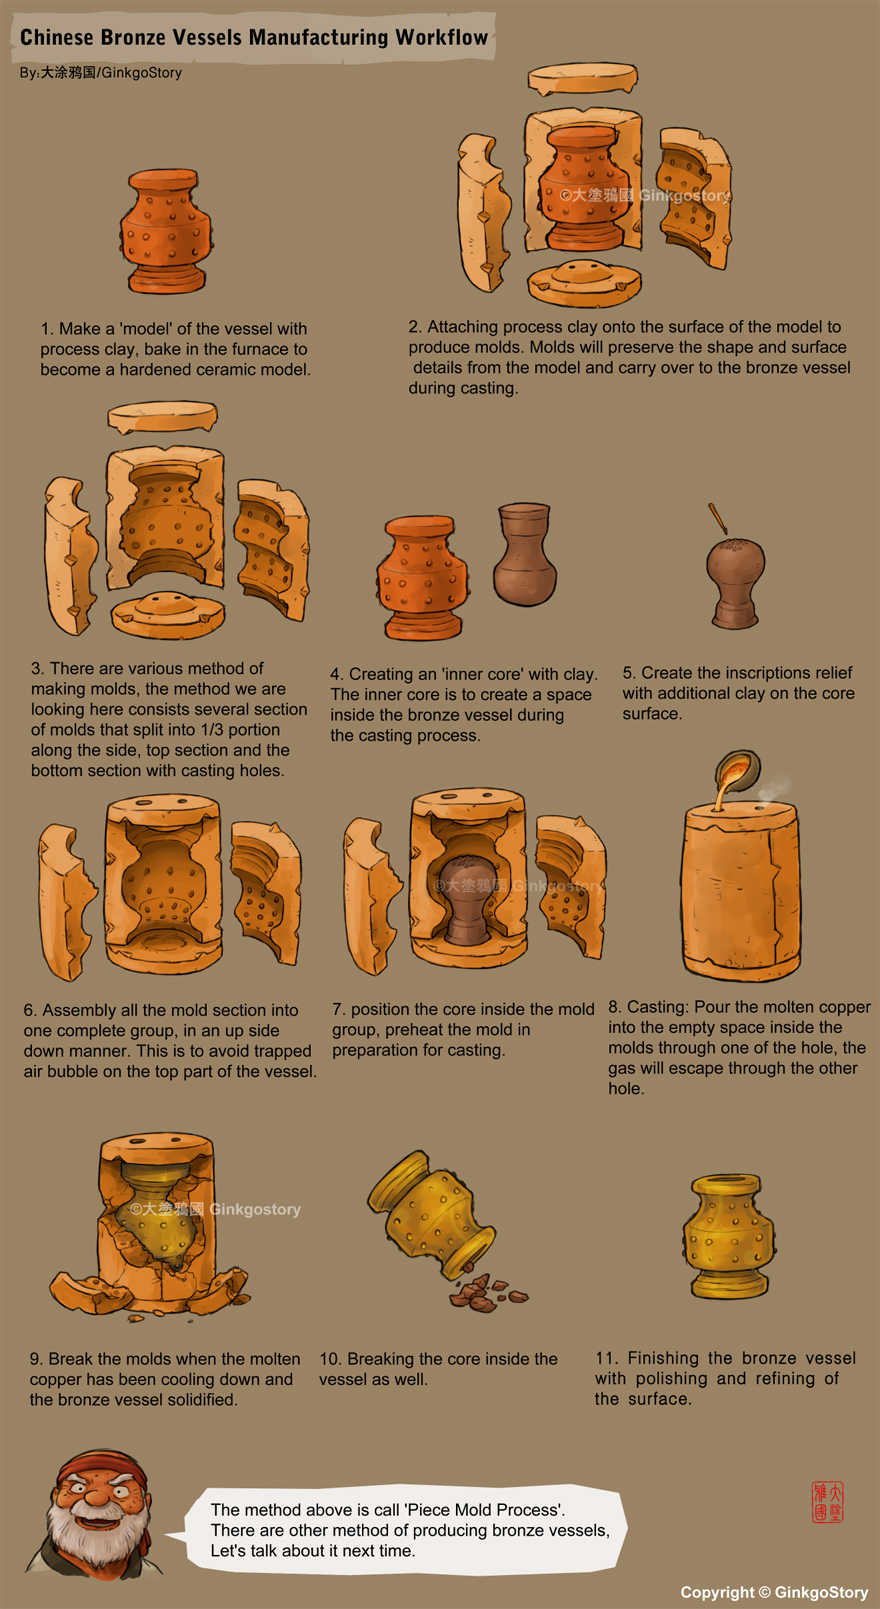 Workflow of Bronze Vessel Casting